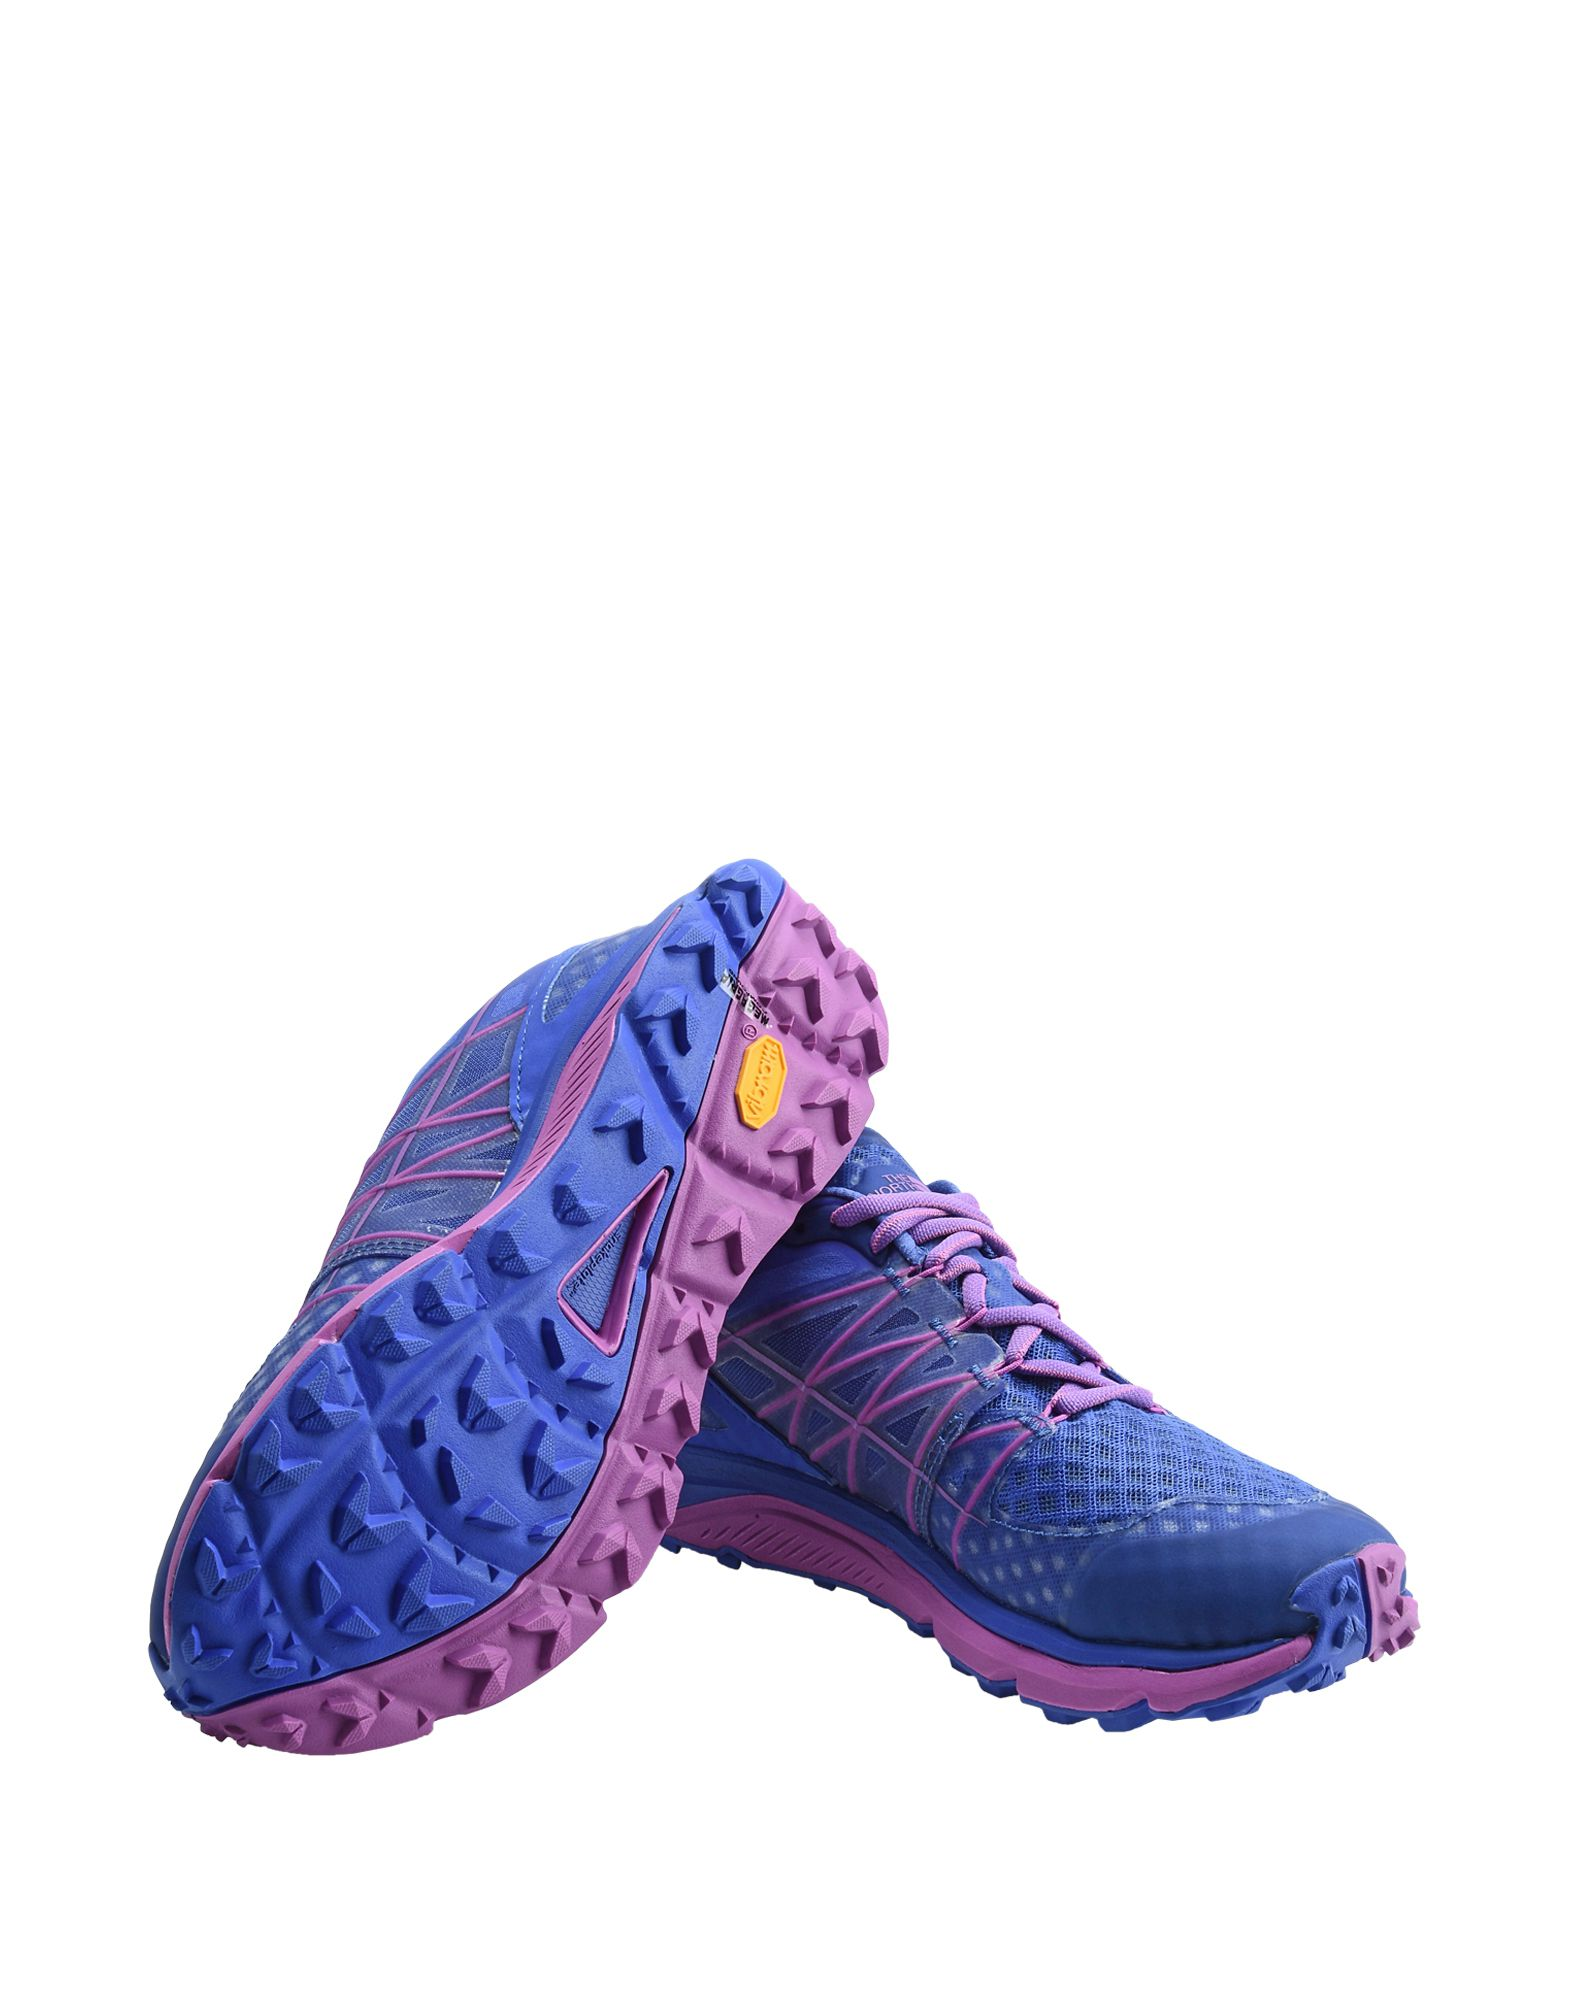 Sneakers The North Face M Ultra Vertical Vibram Megagrip, Flashdry Trail Running - Donna - 11203938AB